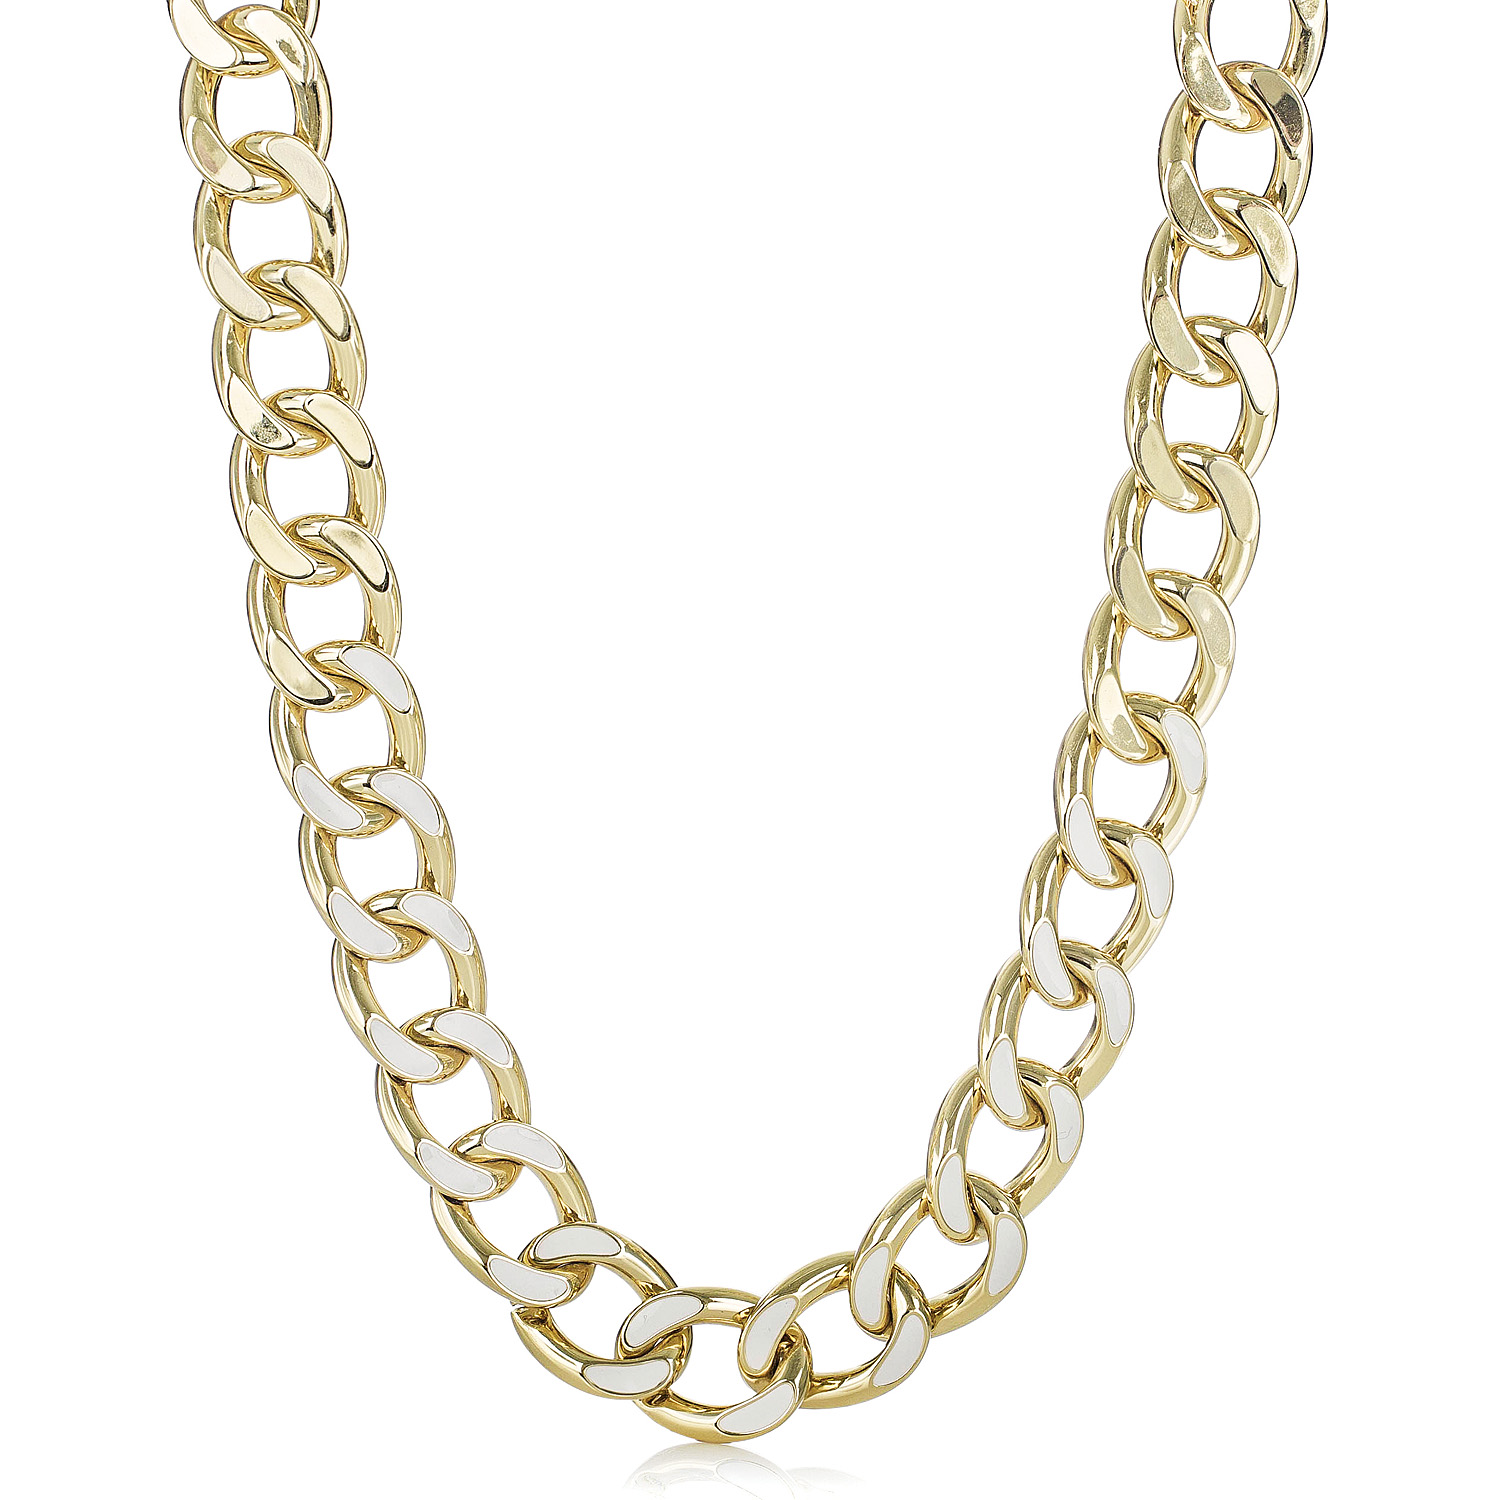 number gold necklace webstore samuel chain curb d product h twist